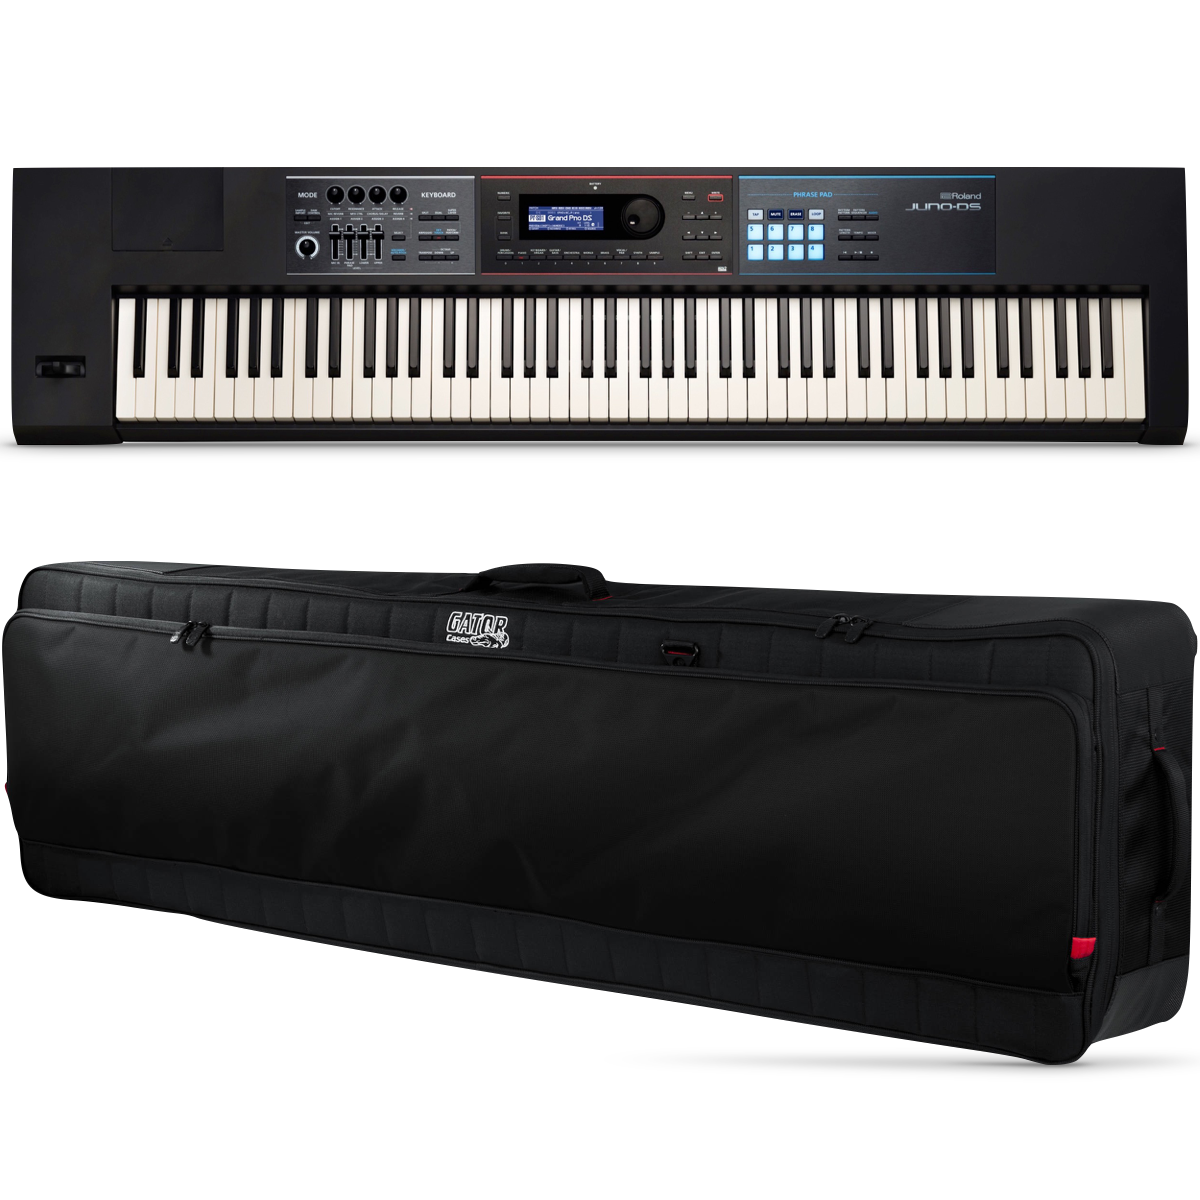 Roland JUNO DS-88 Synthesizer Keyboard, 88-Key, with Gator Bag